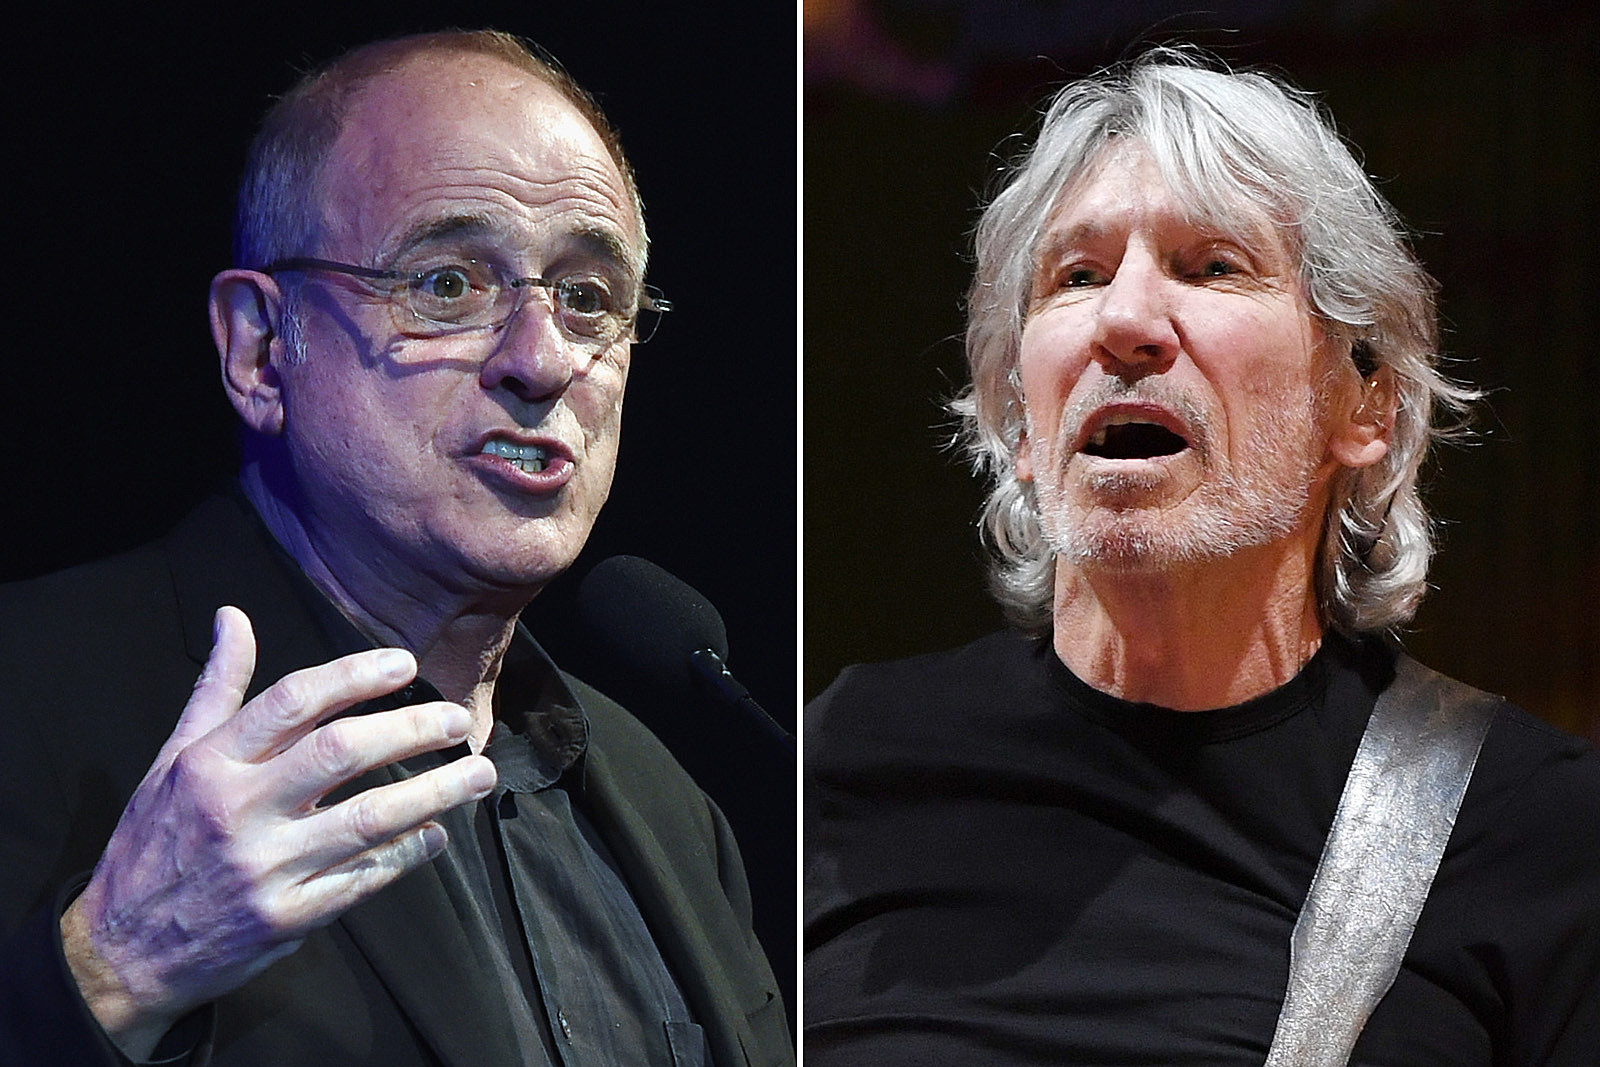 Why Bob Ezrin Hid 'The Wall' Tapes From Pink Floyd's Record Label